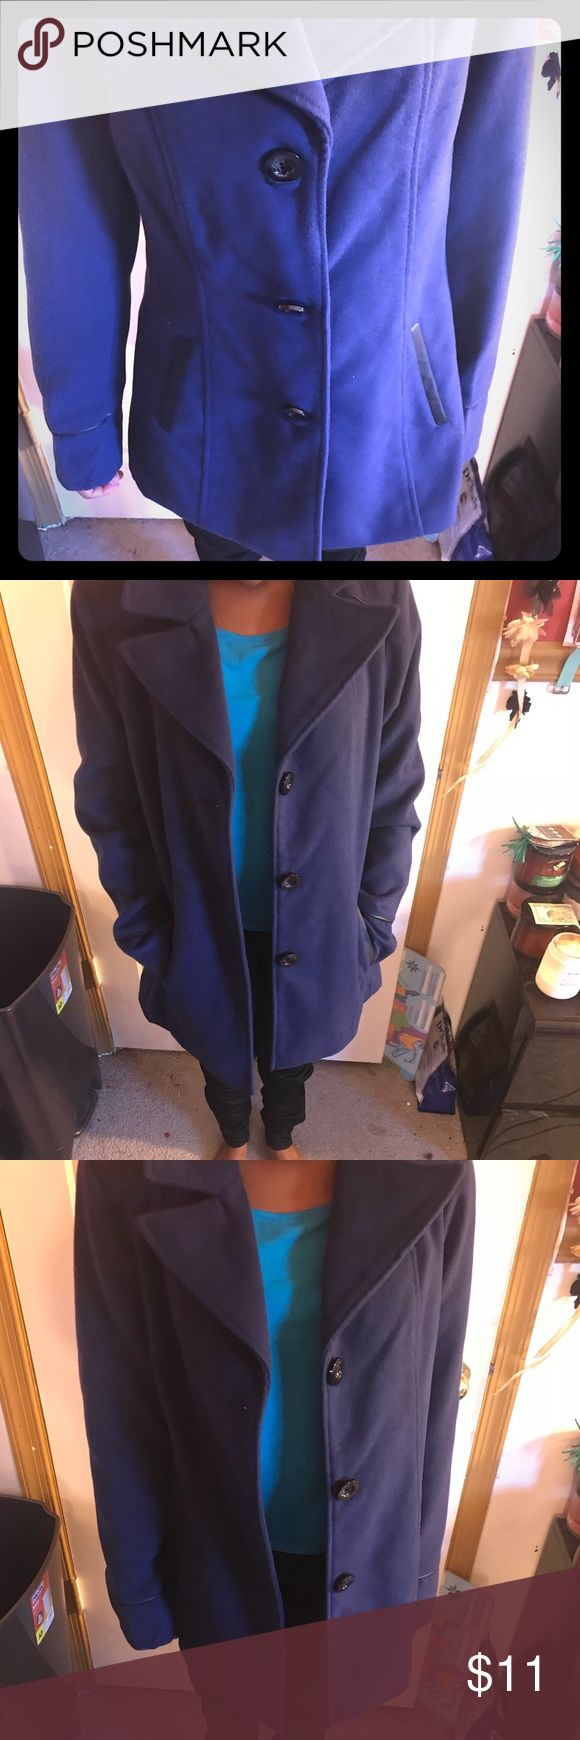 Blue and black trench coat Blue and black trench coat Jackets & Coats Pea Coats